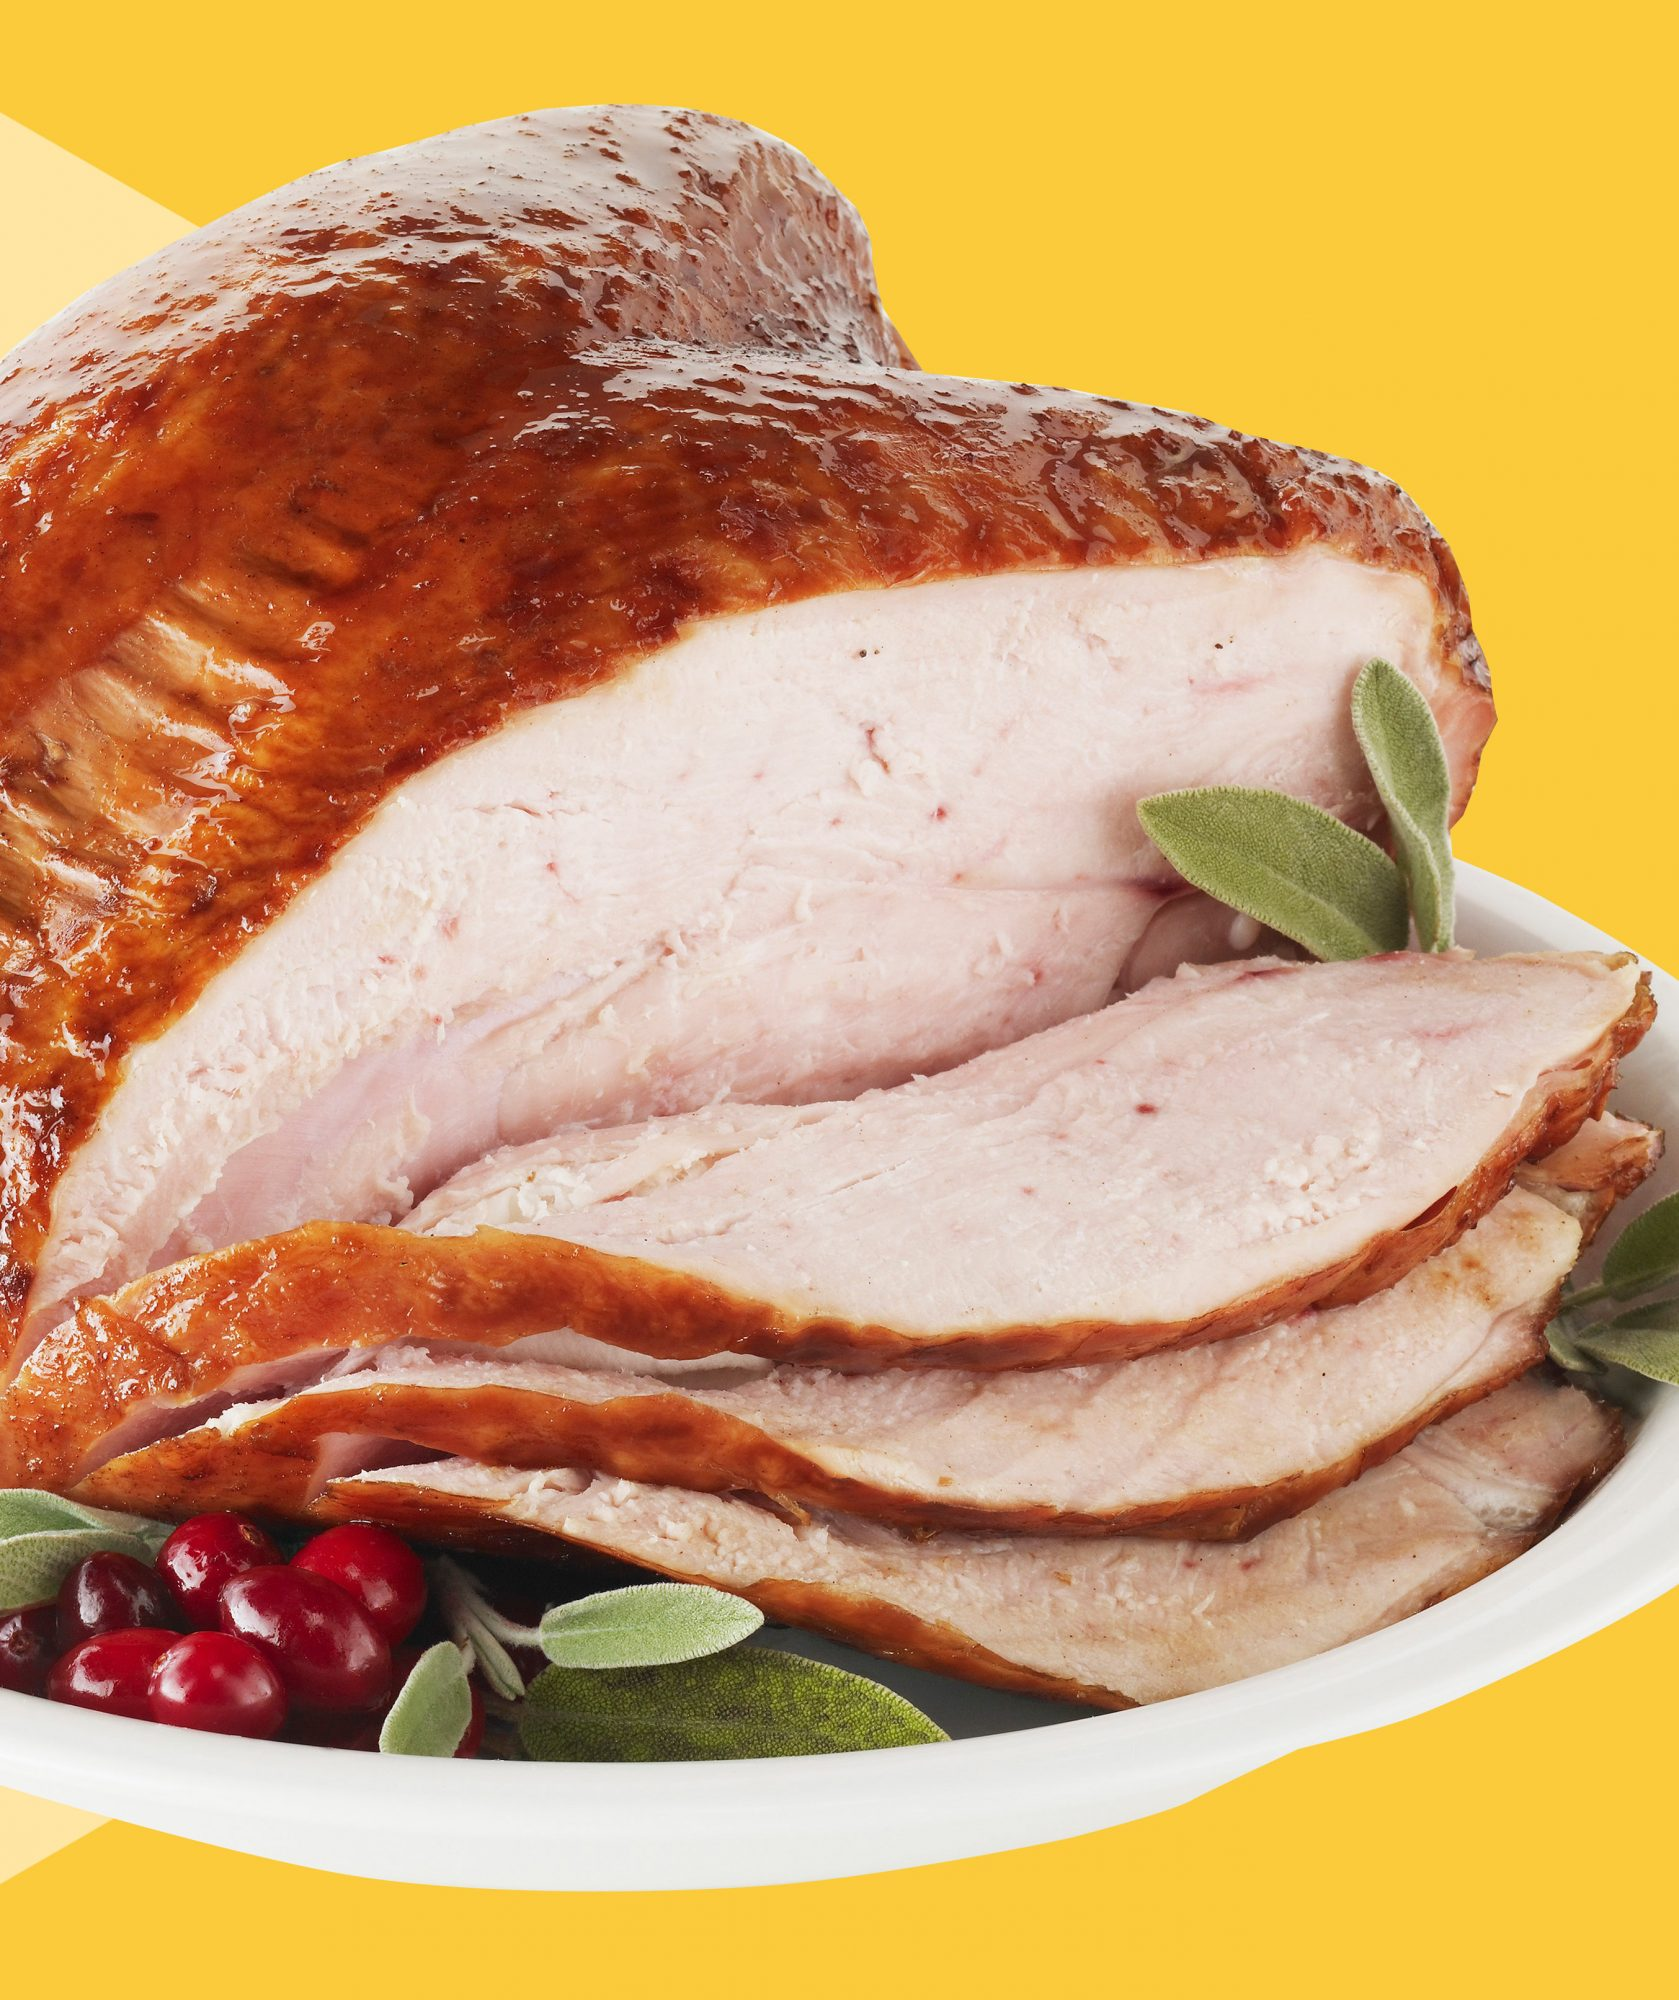 How to Cook a Thanksgiving Turkey Without a Roasting Pan